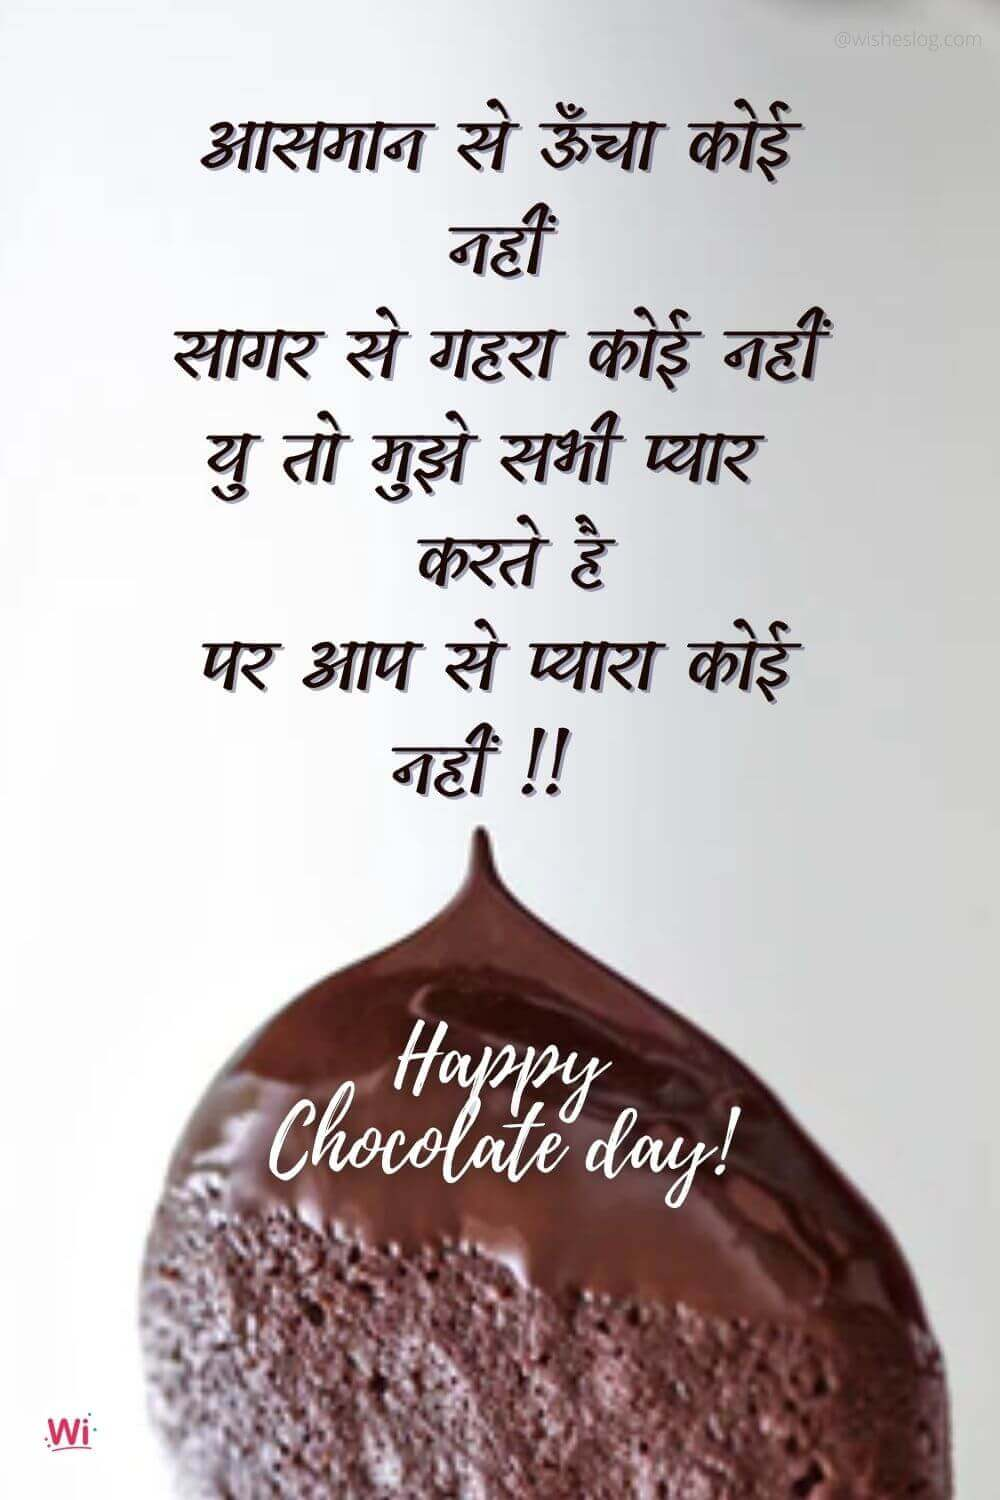 chocolate day wishes for girlfriend in hindi